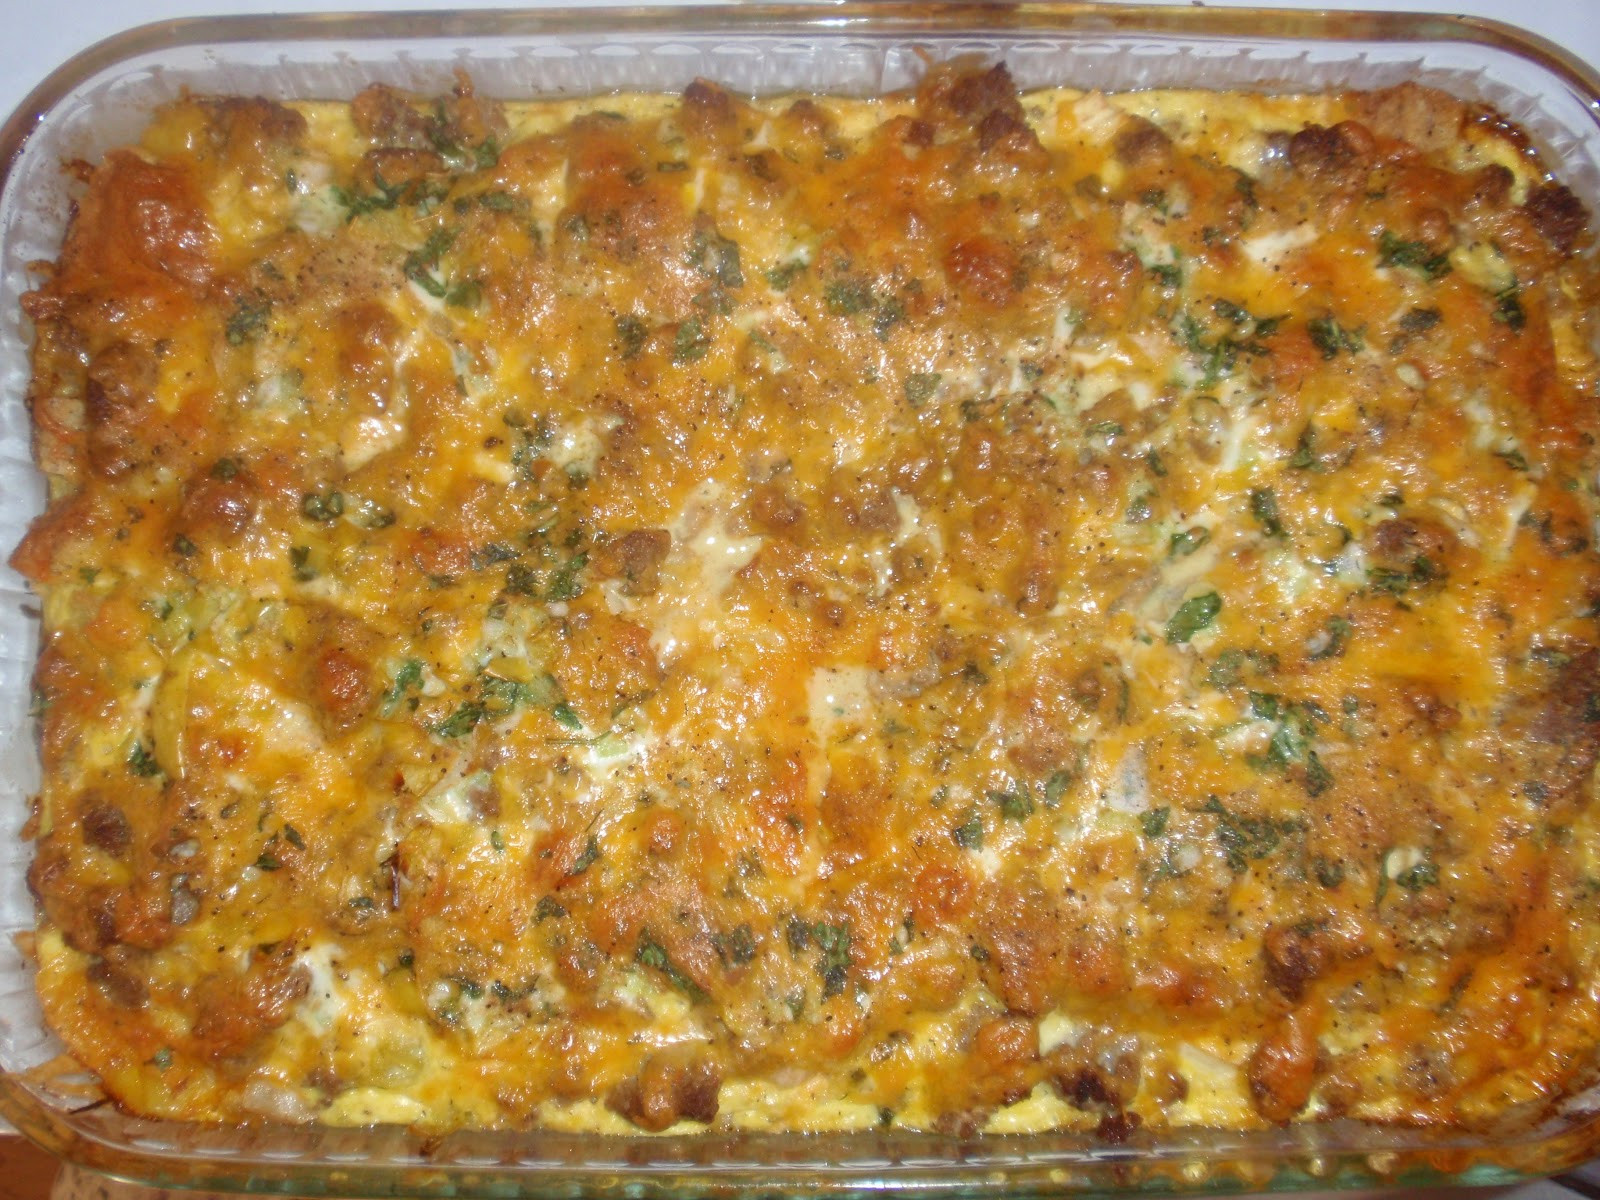 Healthy Breakfast Casserole With Spinach  The Kitchen Chic Healthy ish Breakfast Casserole